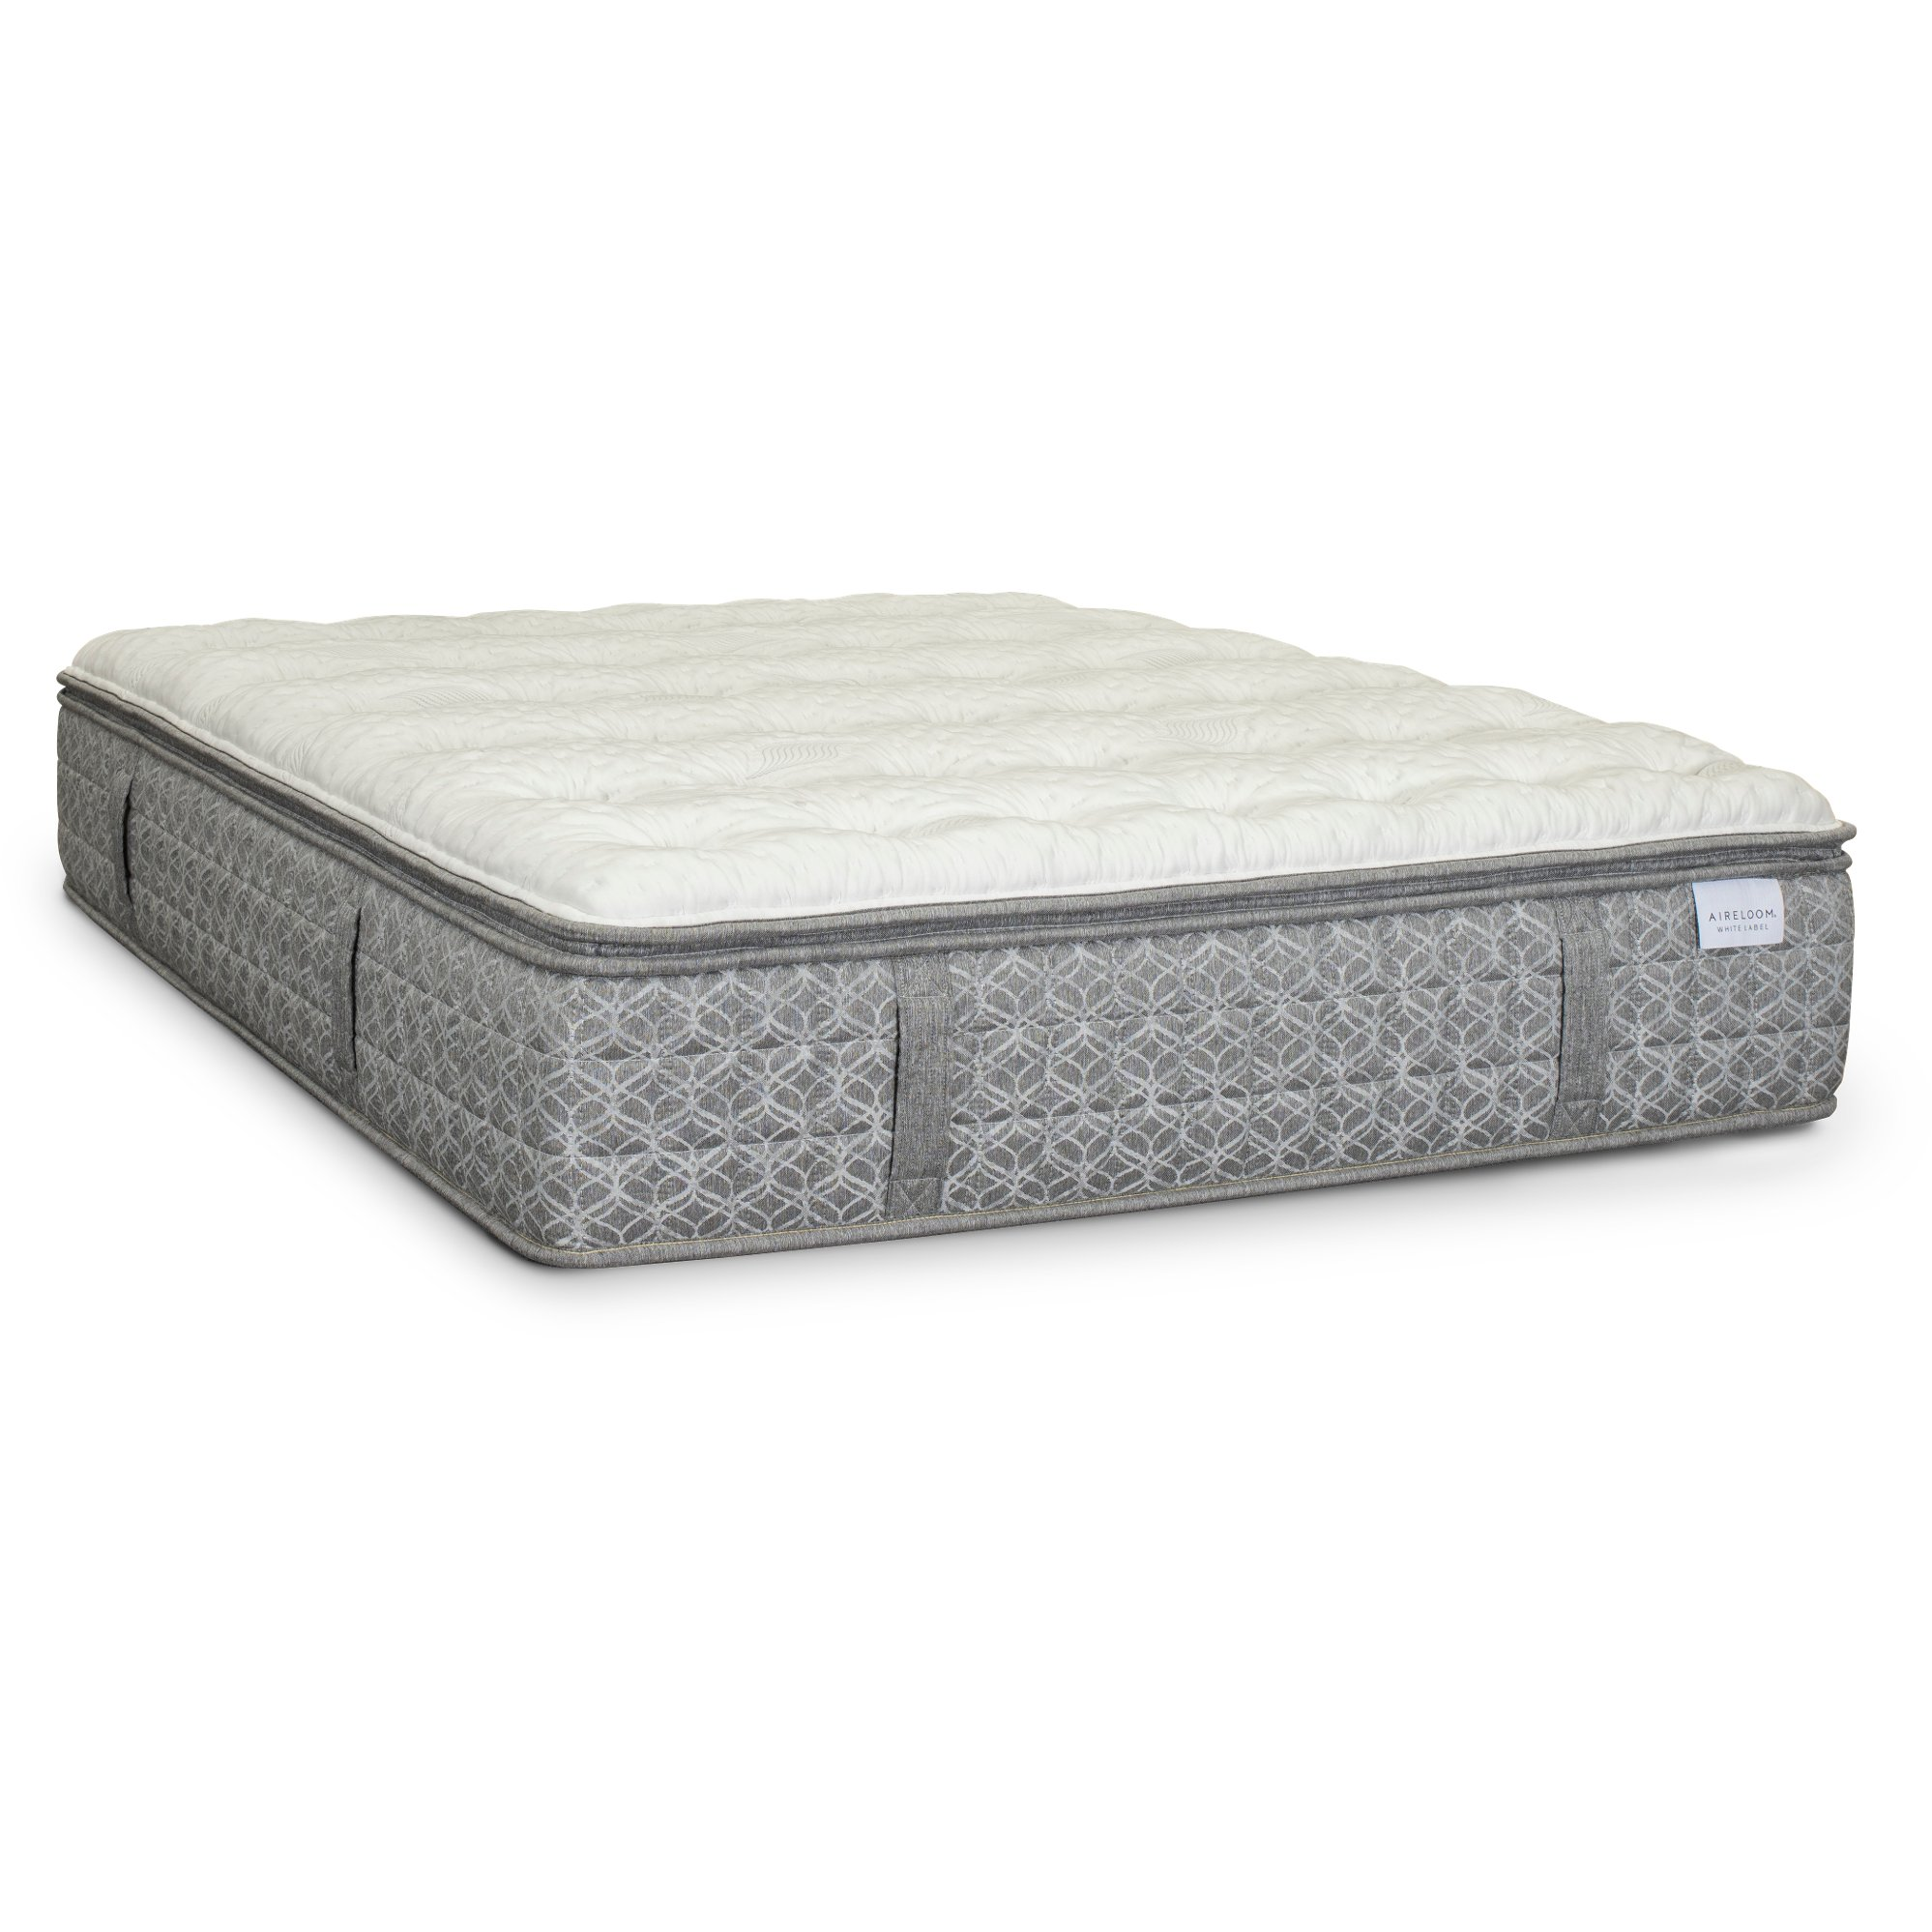 8 Simple Techniques For Twin Xl Mattress